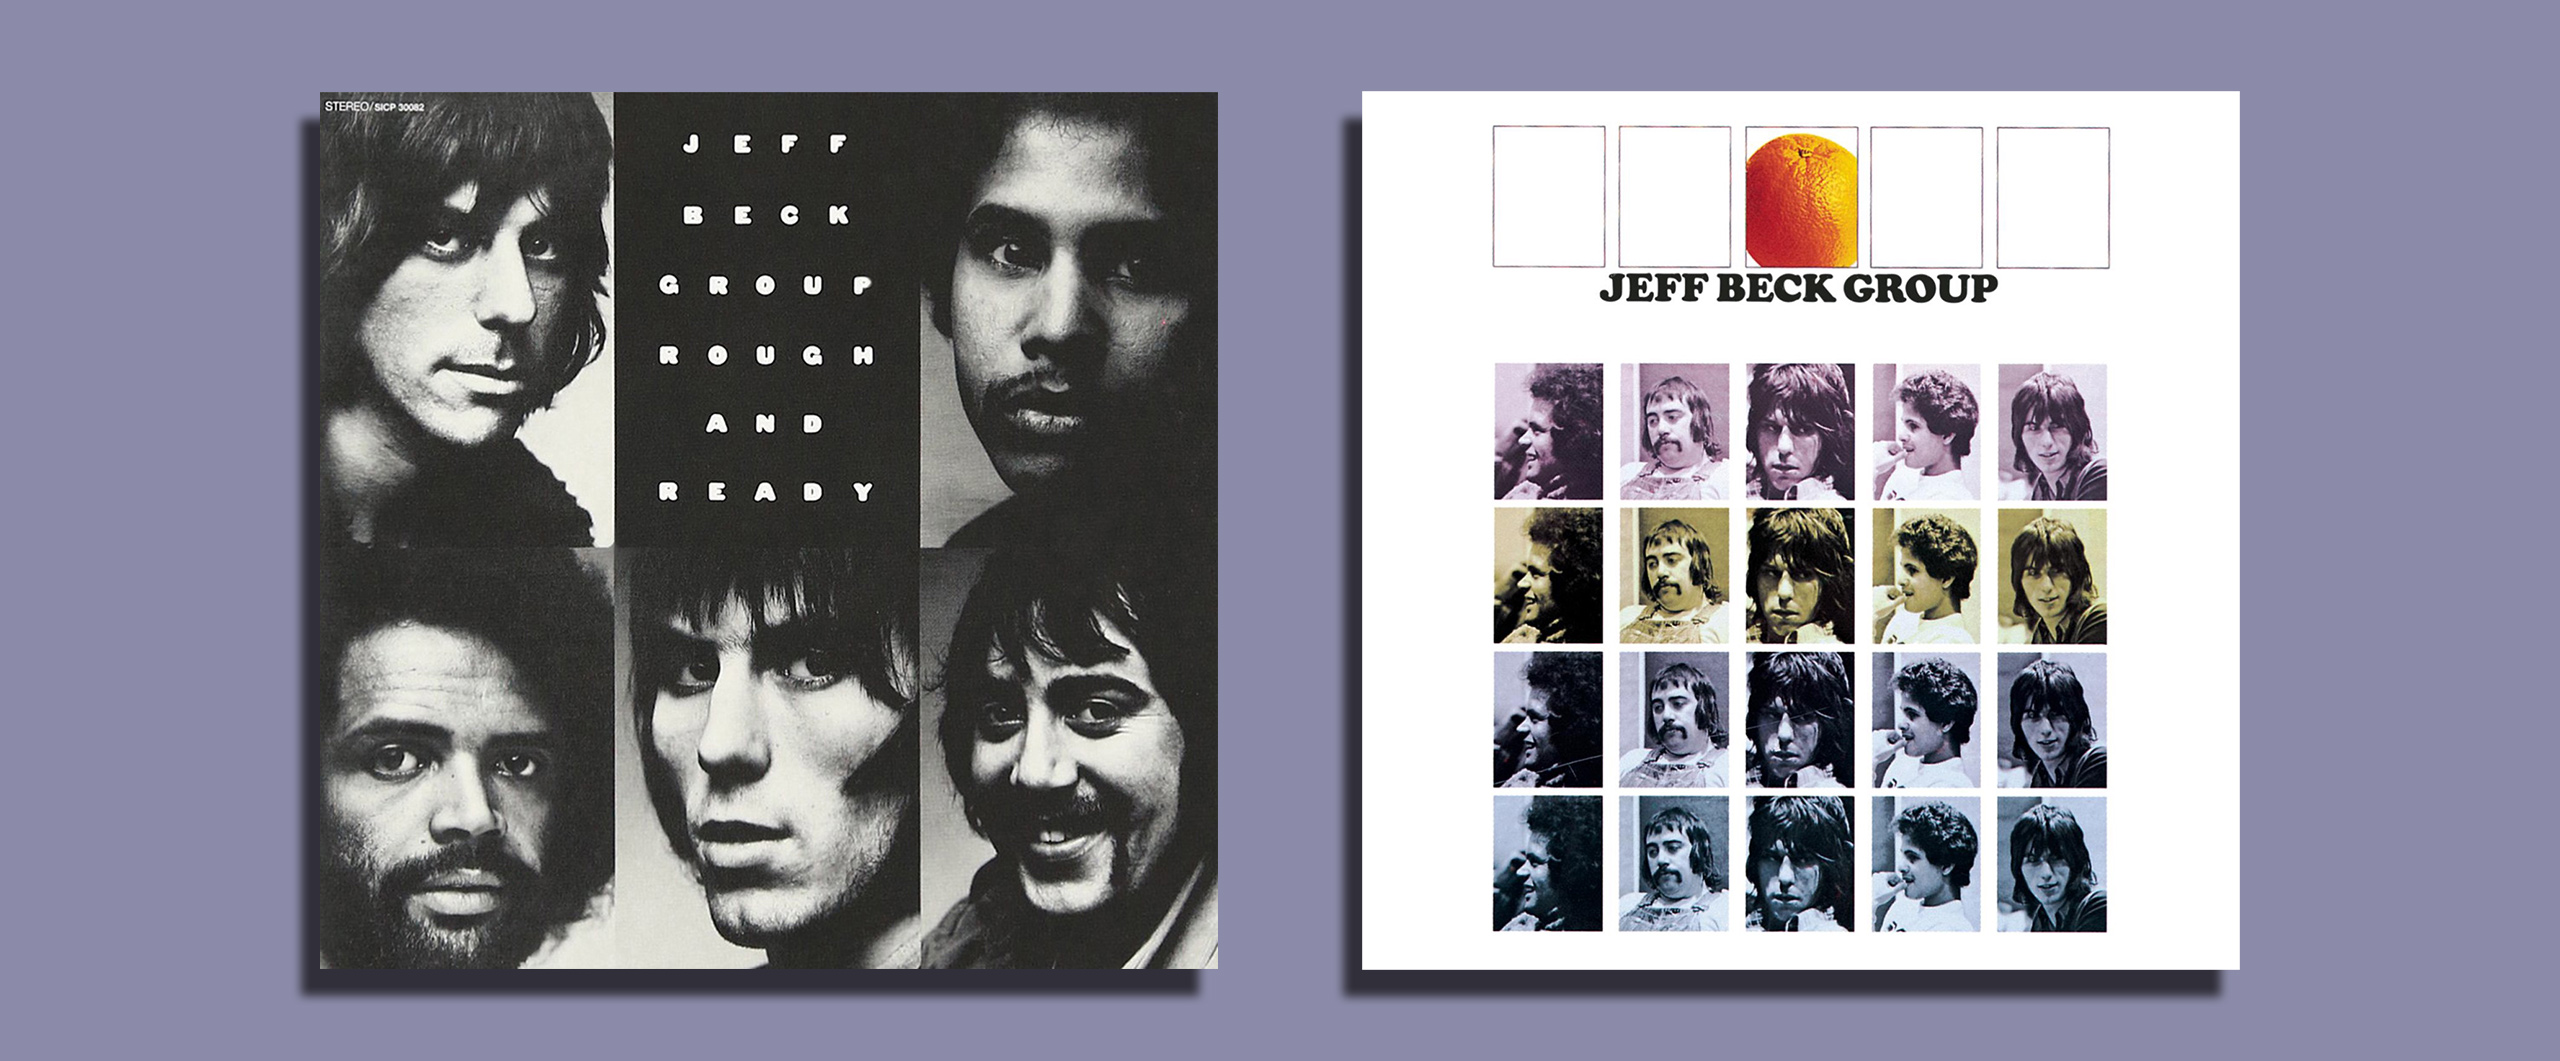 GM Disc Review Special『Rough And Ready』&『The Jeff Beck Group』